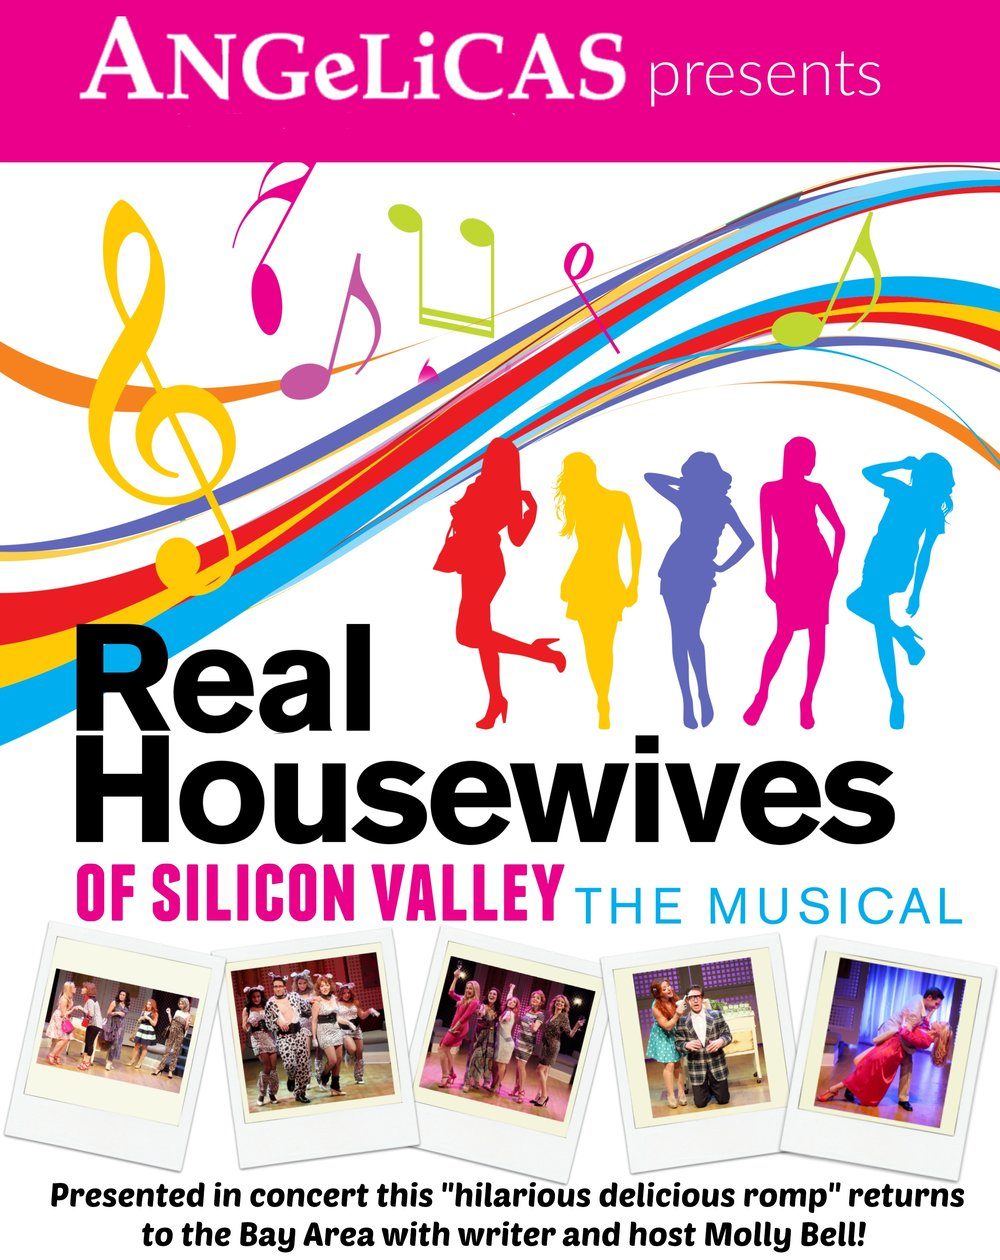 angelica's redwood city - Dinner & Drinks Seating available from 6:30-8:15. Show begins at 8:30Enter HOUSEWIVES EARLY BIRD for 10% off NOW through Feb 22nd!